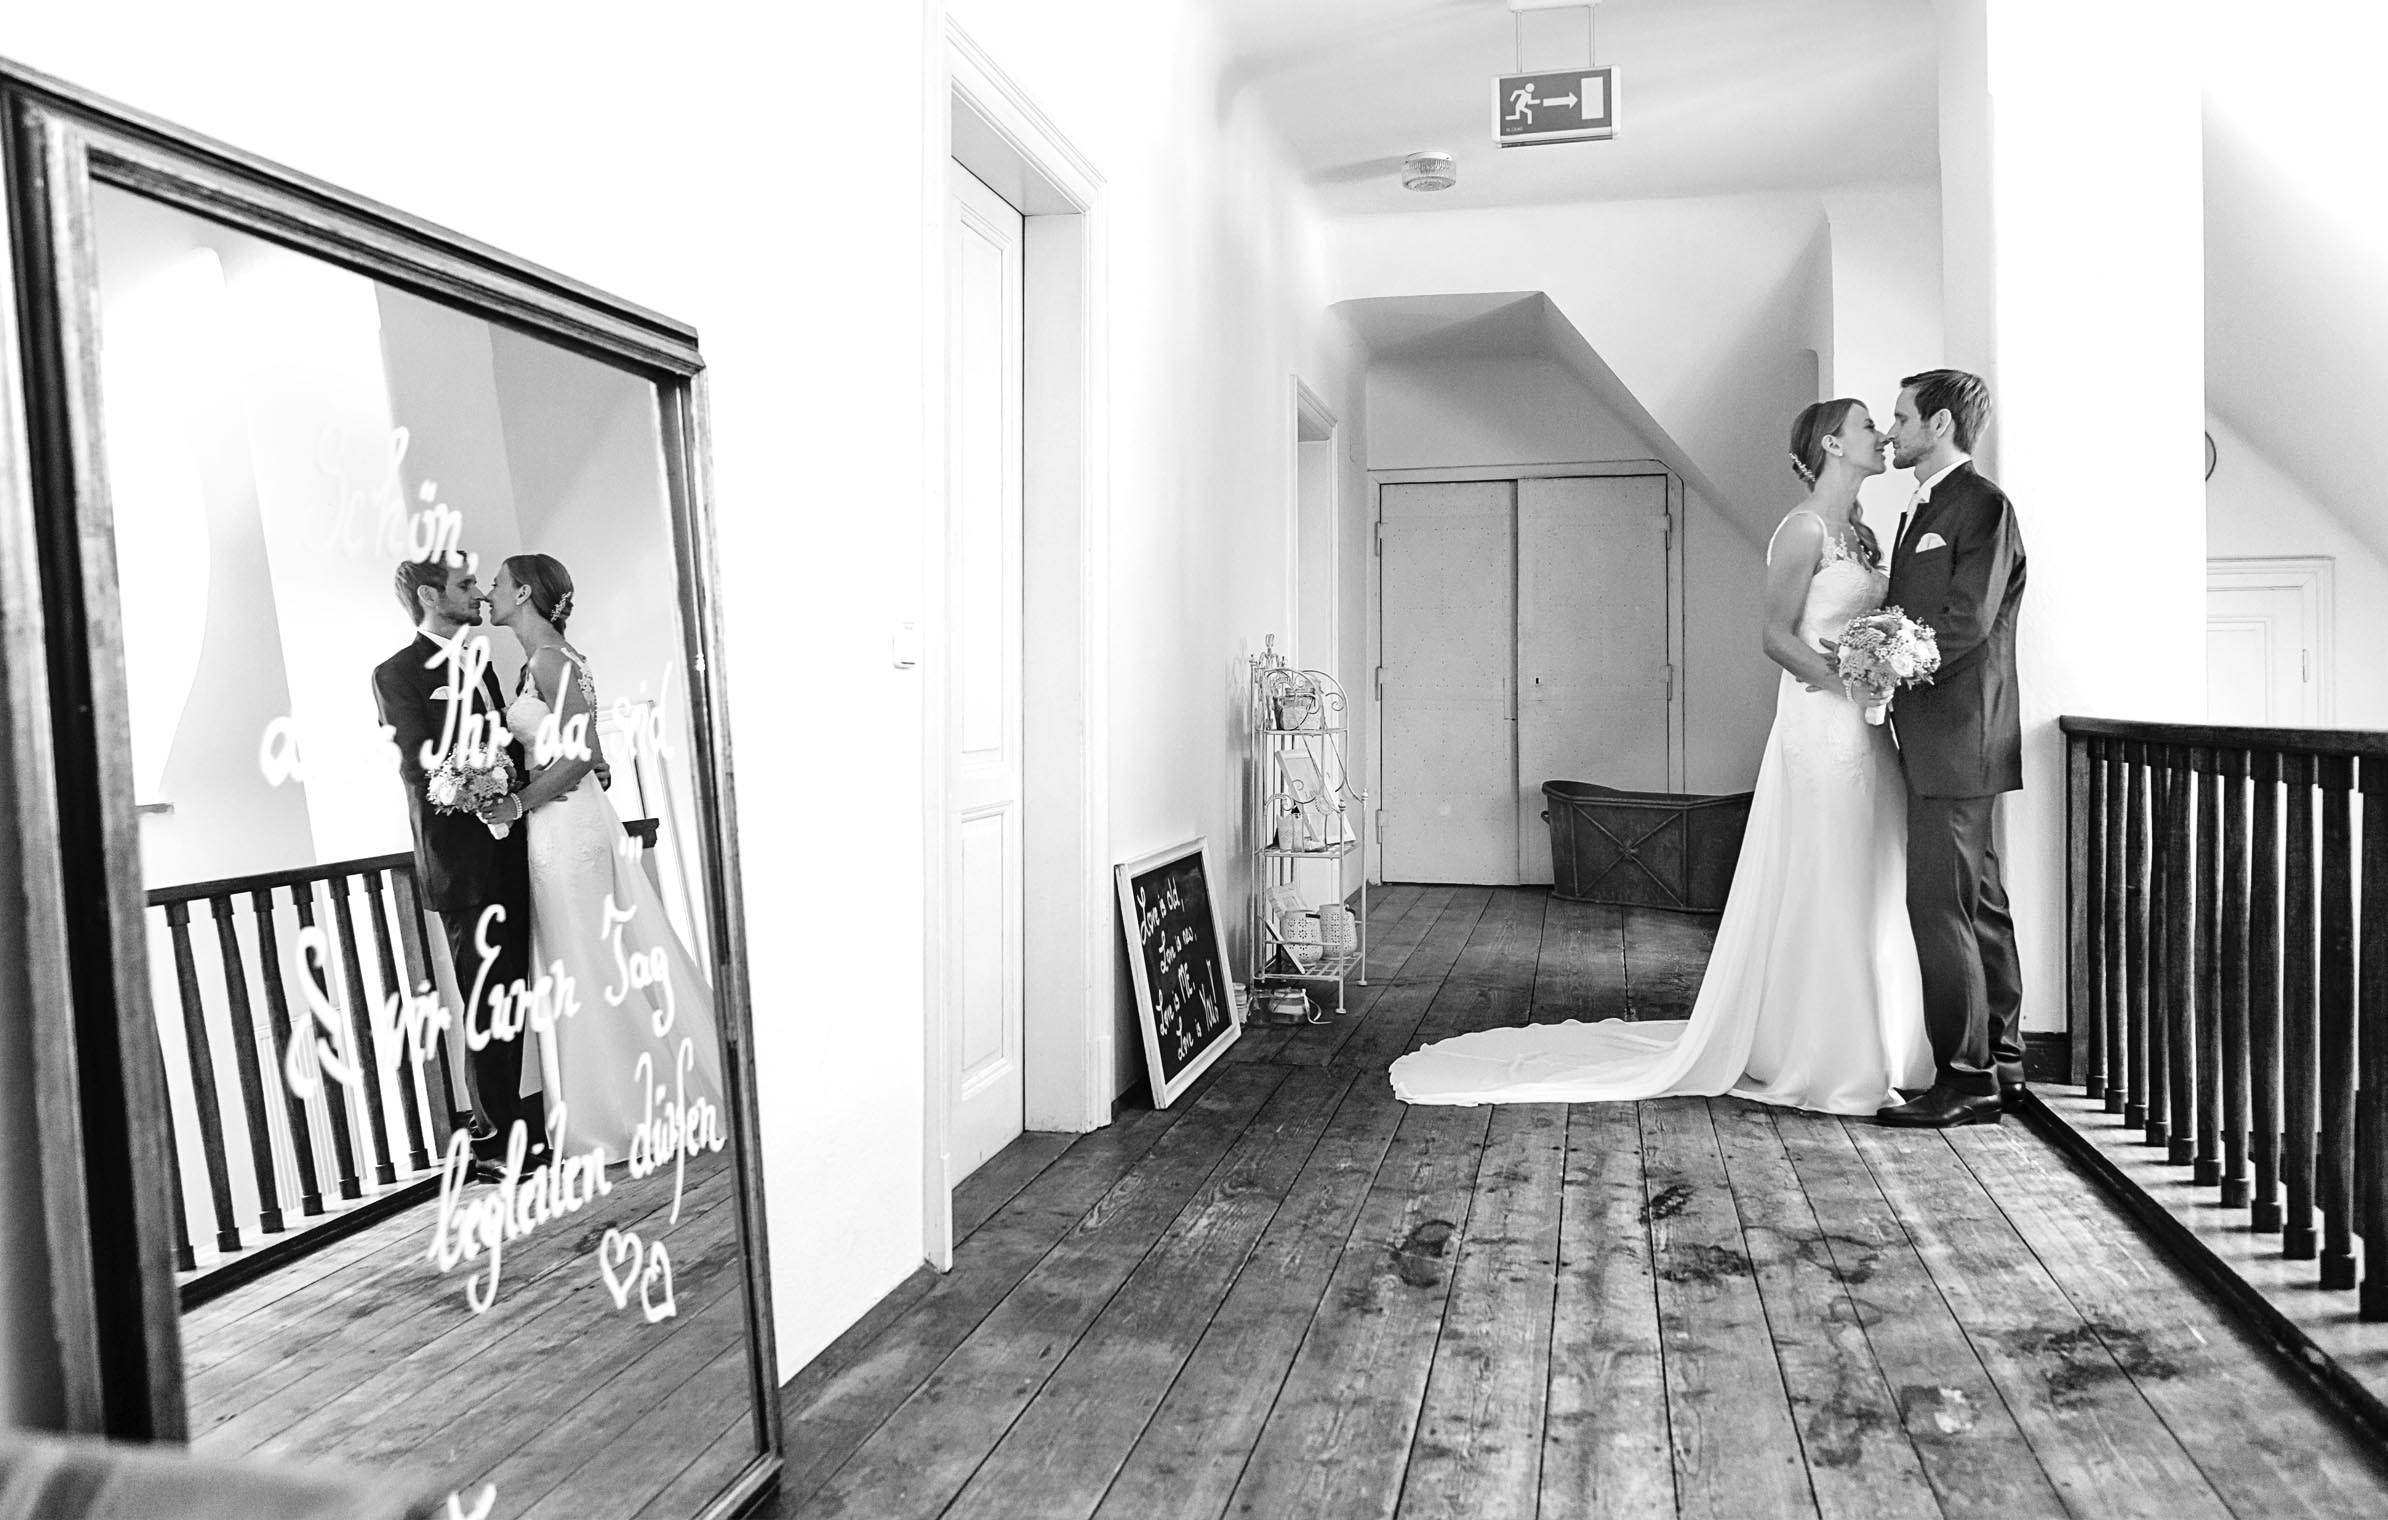 corinna_robrert_hochzeit_wedding_braut_bräutigam_kiss_indoor_mirror_bride_groom_frame_aiola